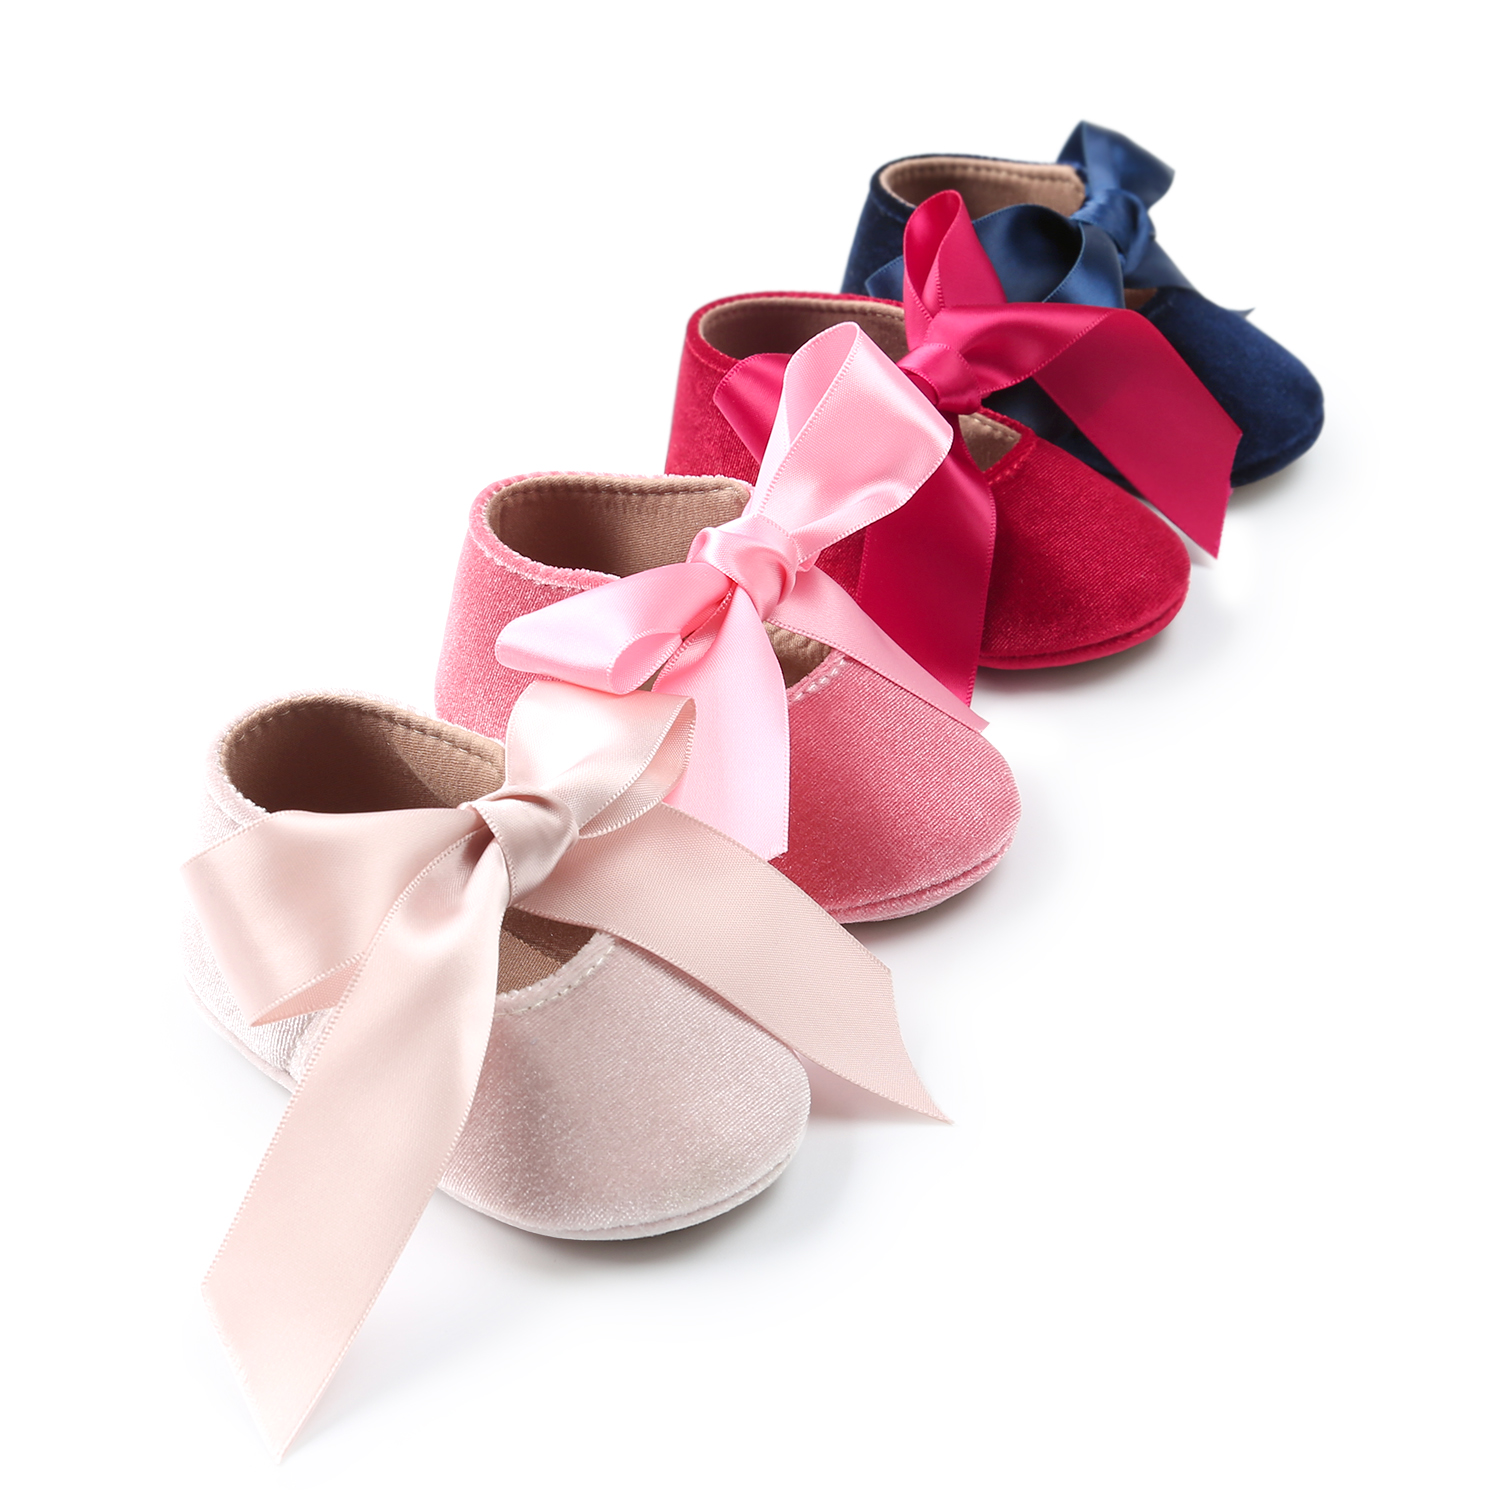 New Baby Girls Princess Shoes Infant Toddler First Walkers Elegant Velvet Infant Girls Dress Shoes Baby Moccasins Baby Crib Shoe